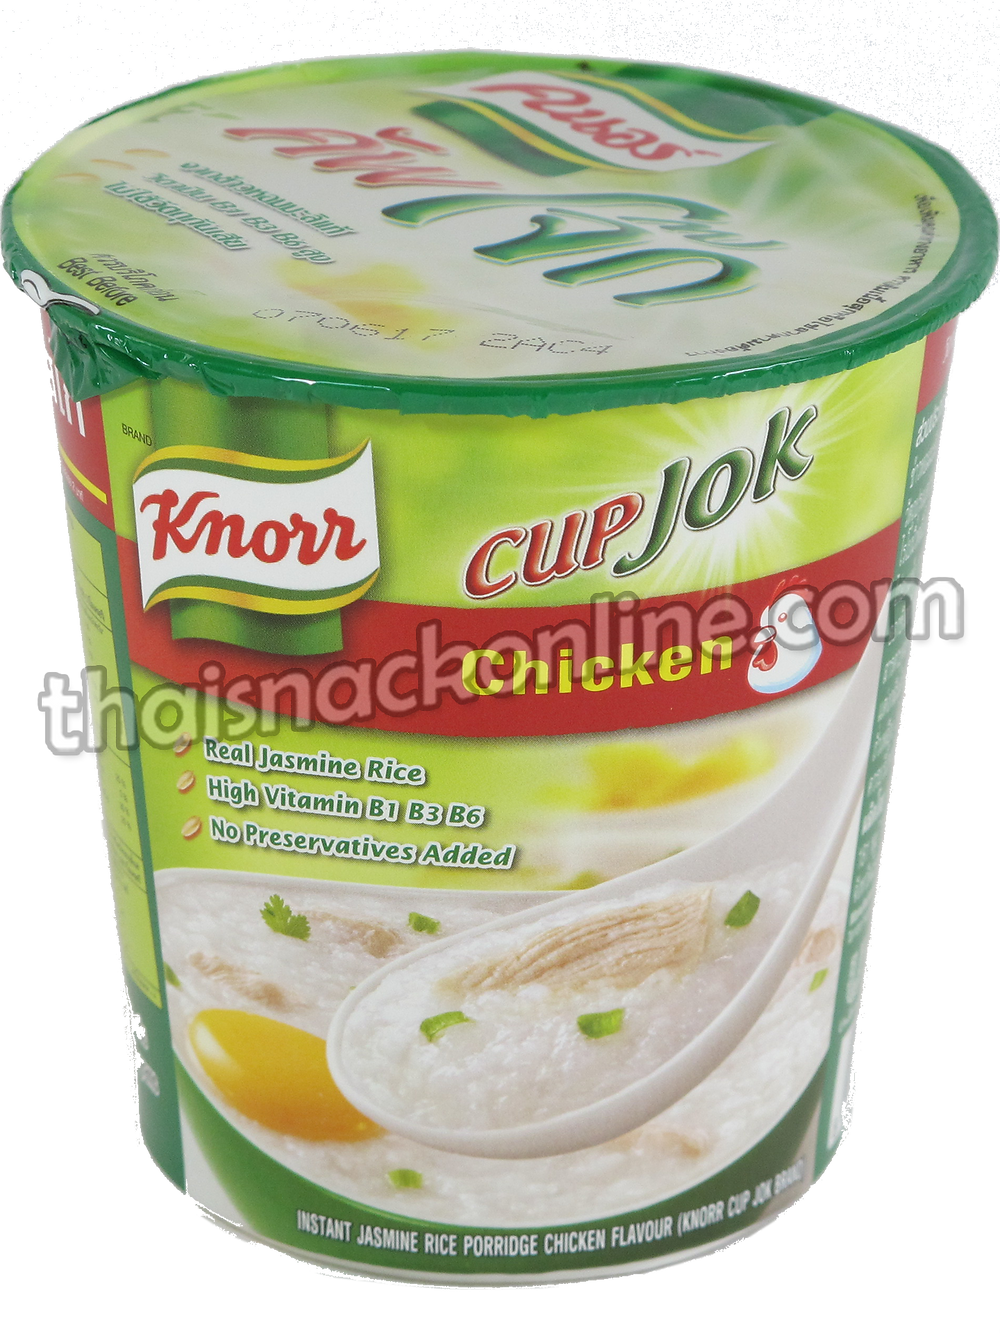 Knorr Cup - Congee Chicken